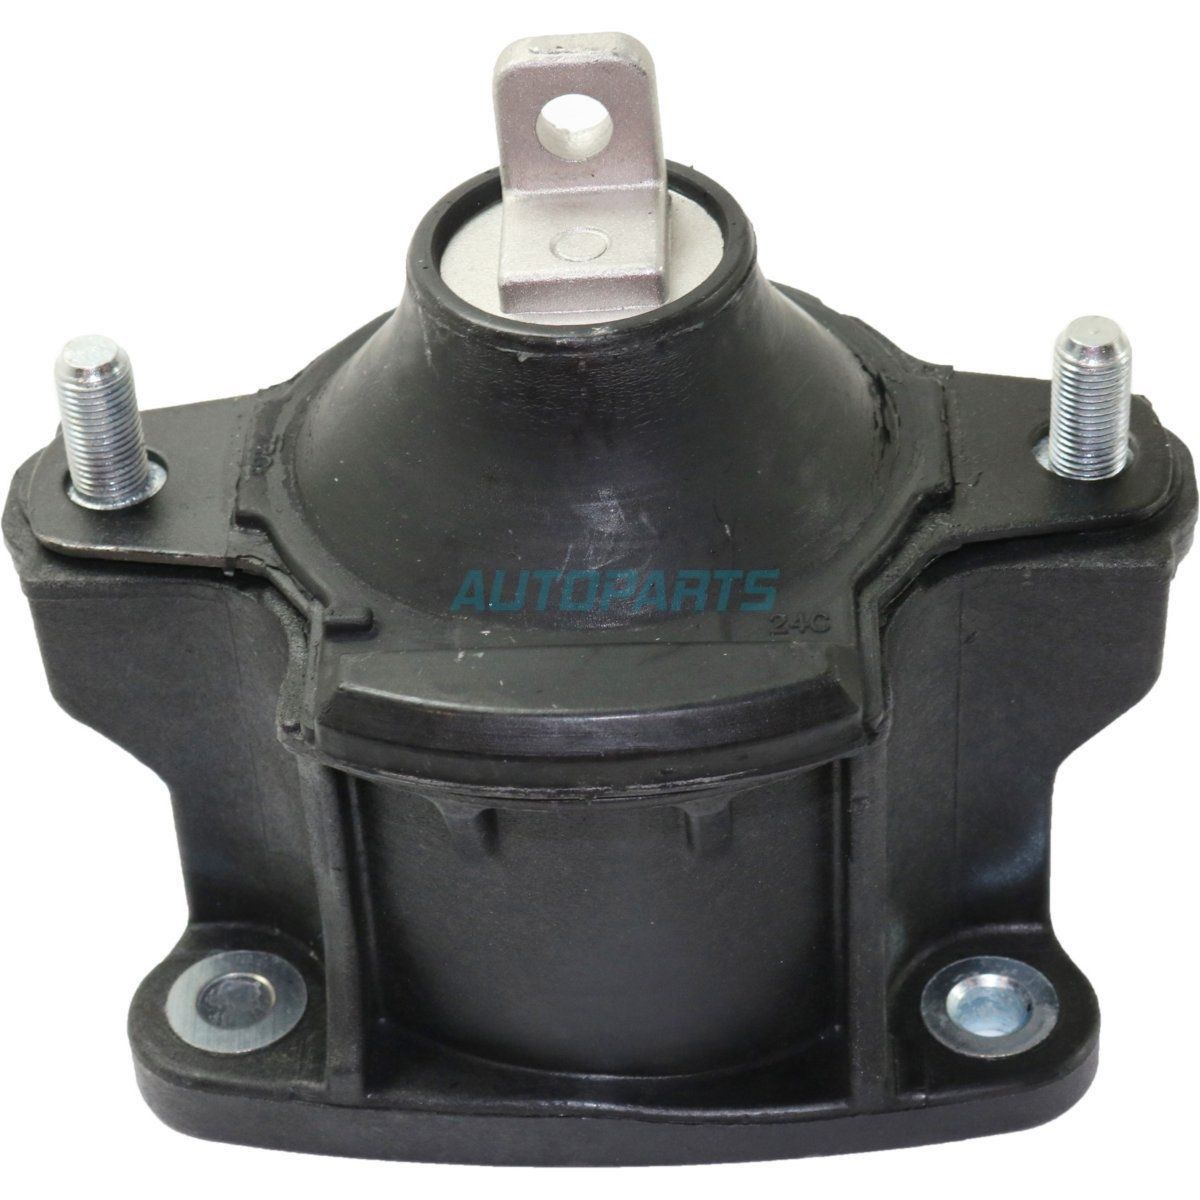 PartsCargo is the Best Affordable Online Auto Parts Store